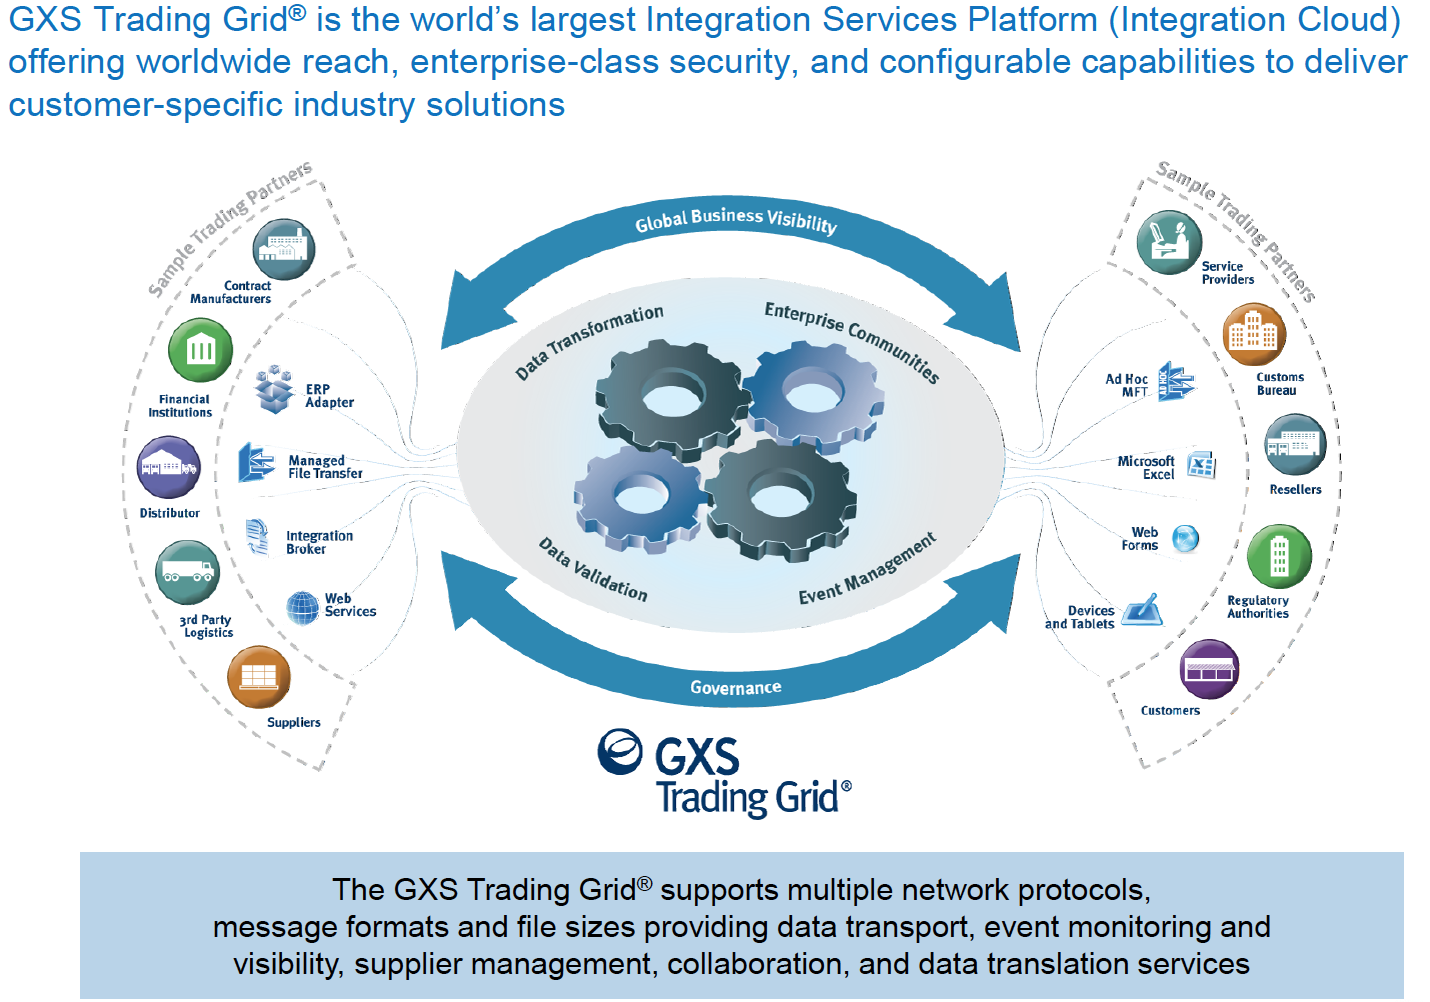 The Cloud Platform: GXS Trading Grid Source: GXS